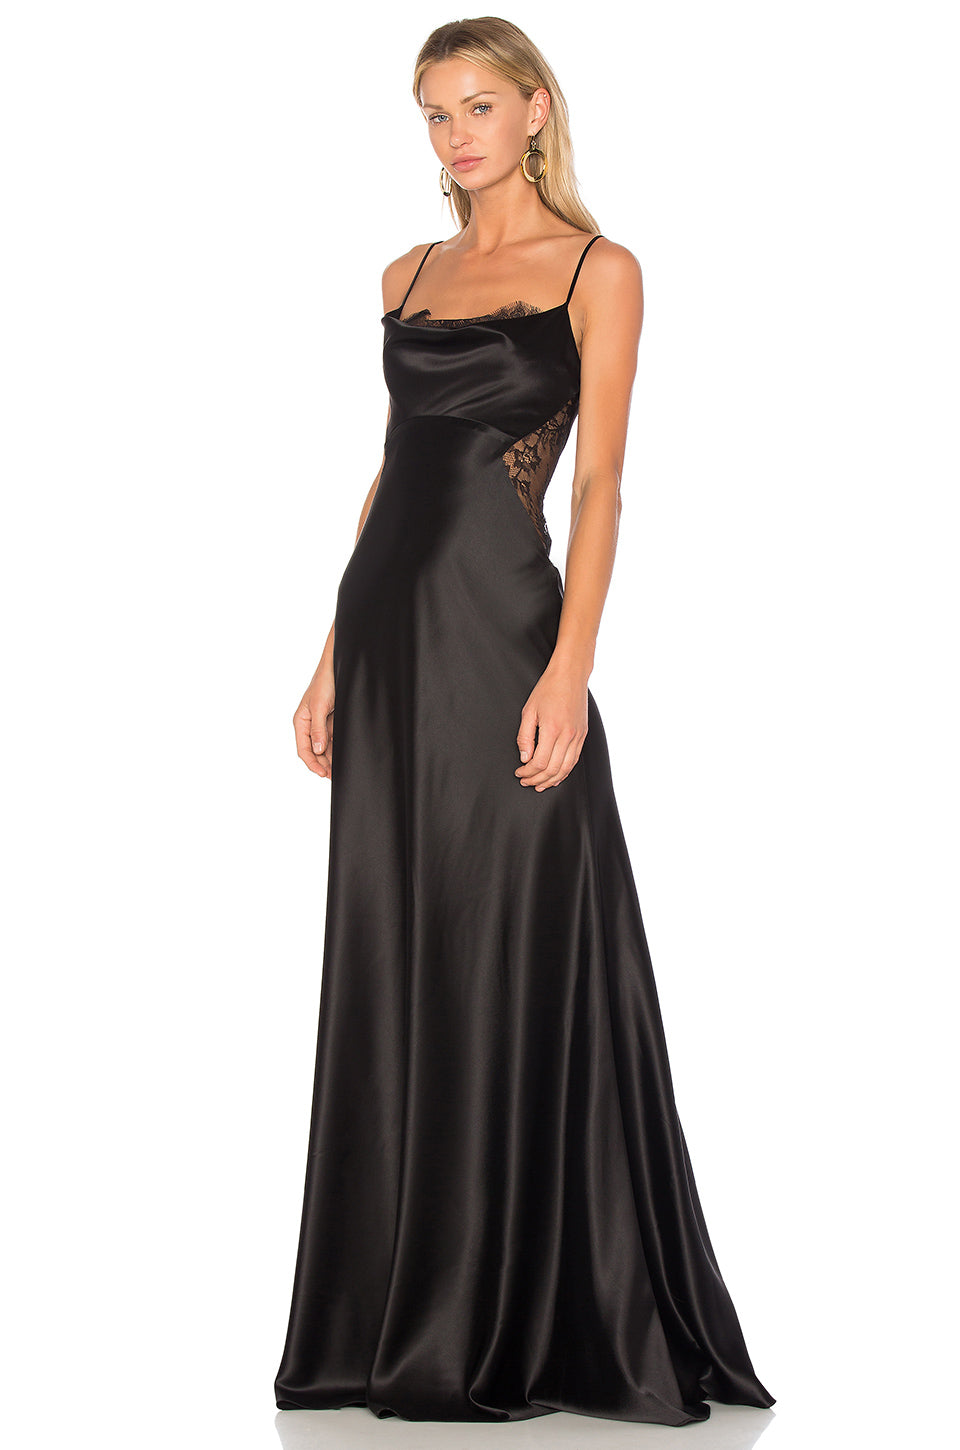 JILL JILL STUART Satiny Lace Cutout Gown Black. Robe longue en satin noire